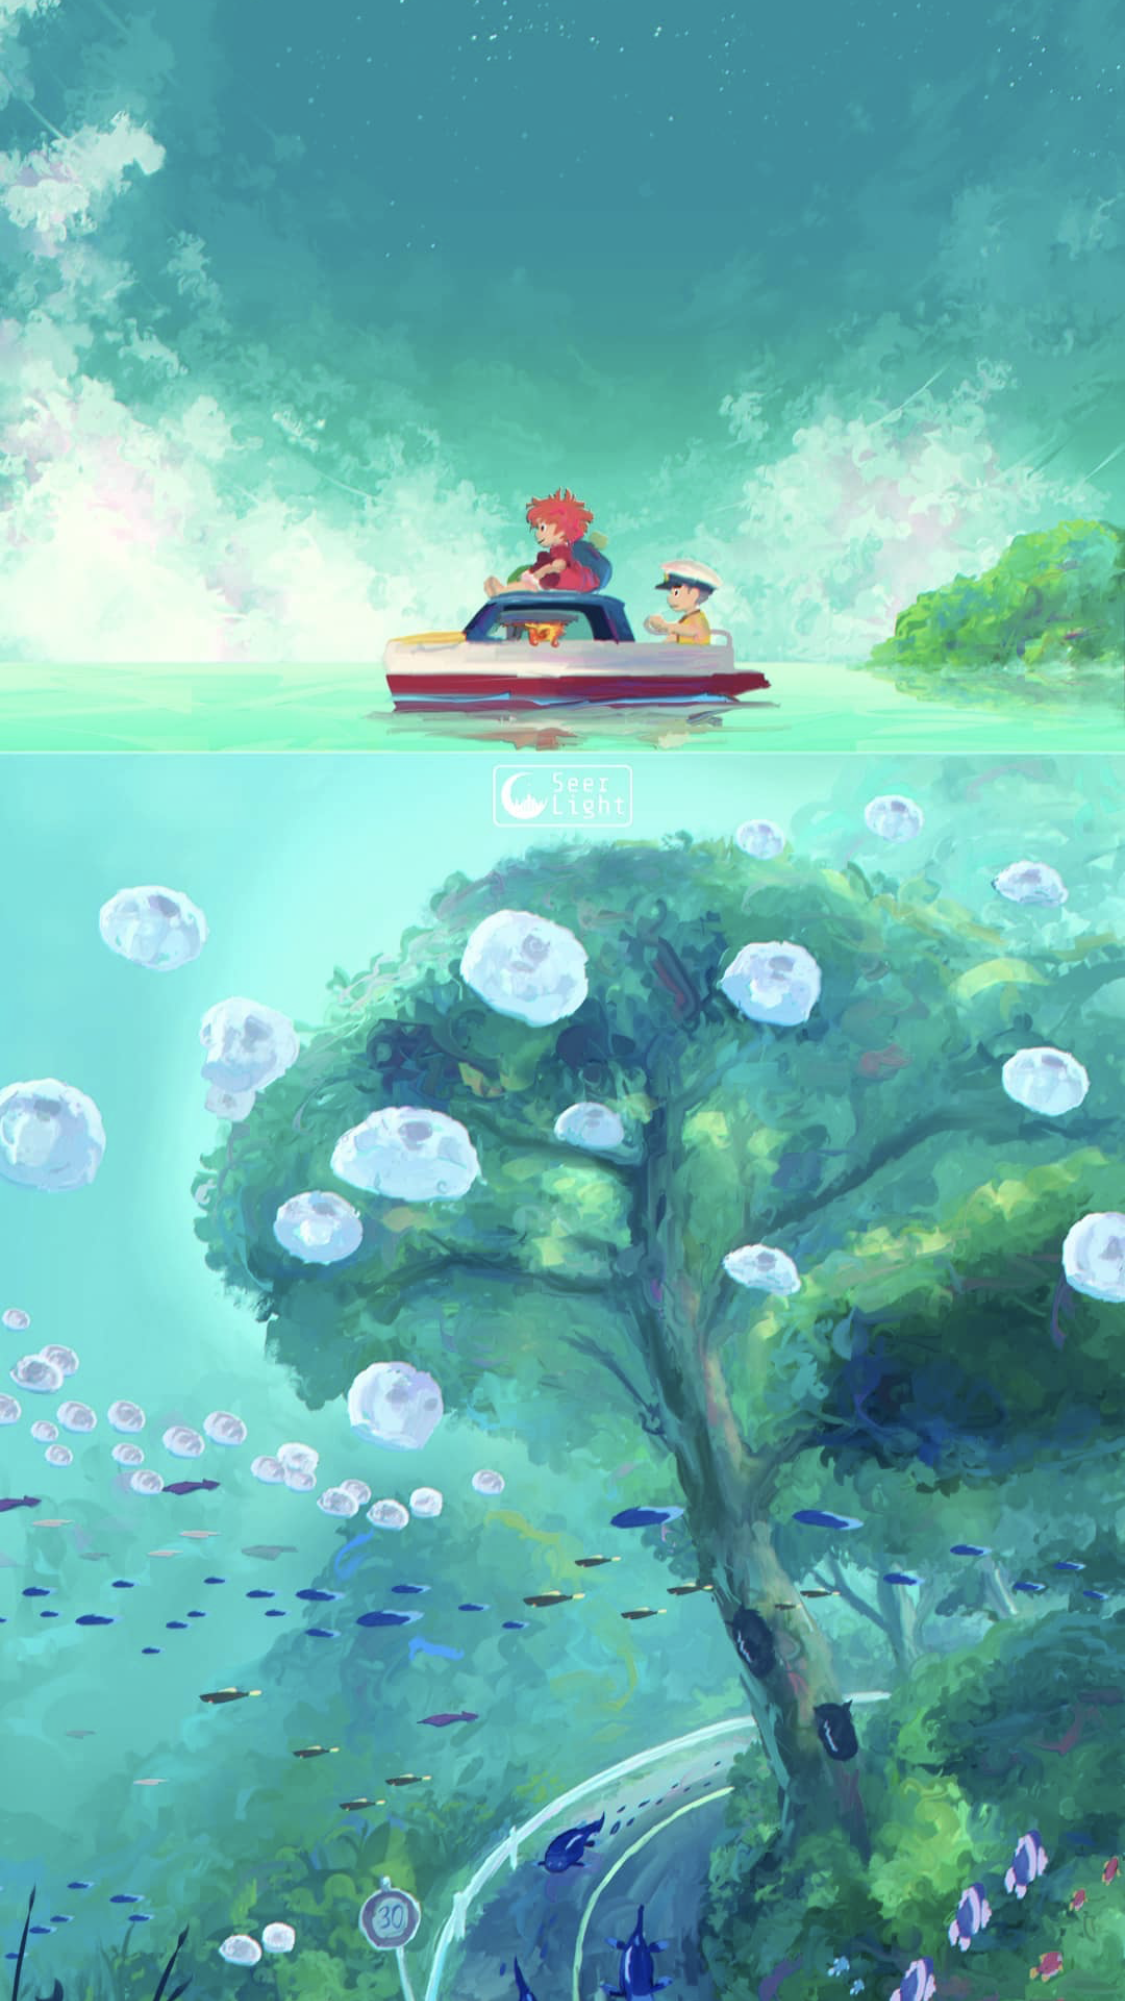 creds to Seerlight on insta in 2020 Ghibli artwork